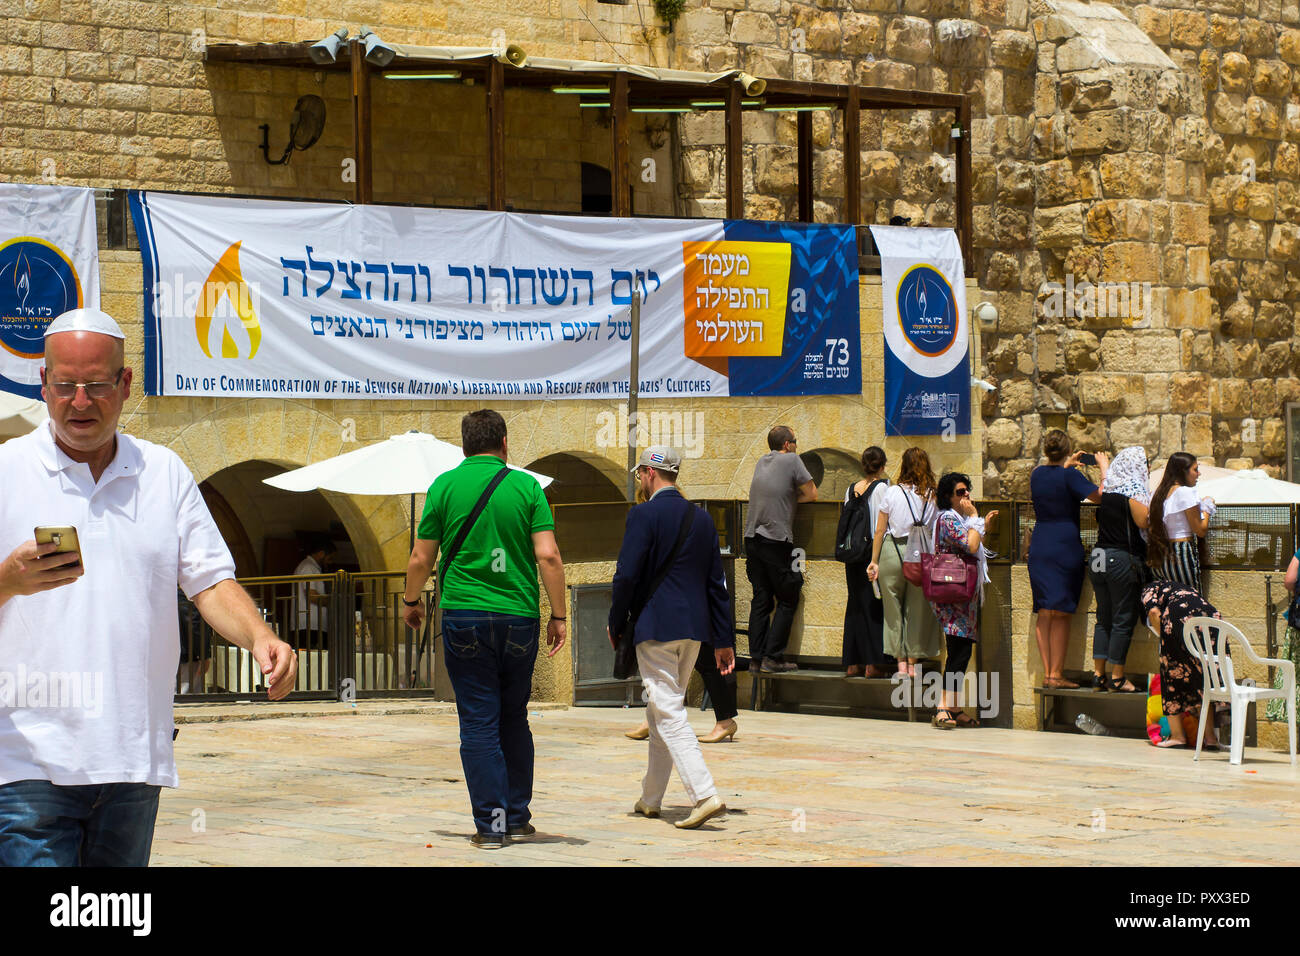 10 May 2018 A large poster in Hebrew announcing a day of commemoration of the nation's liberation from the Nazis hangs at the Western Wall in Jerusale - Stock Image